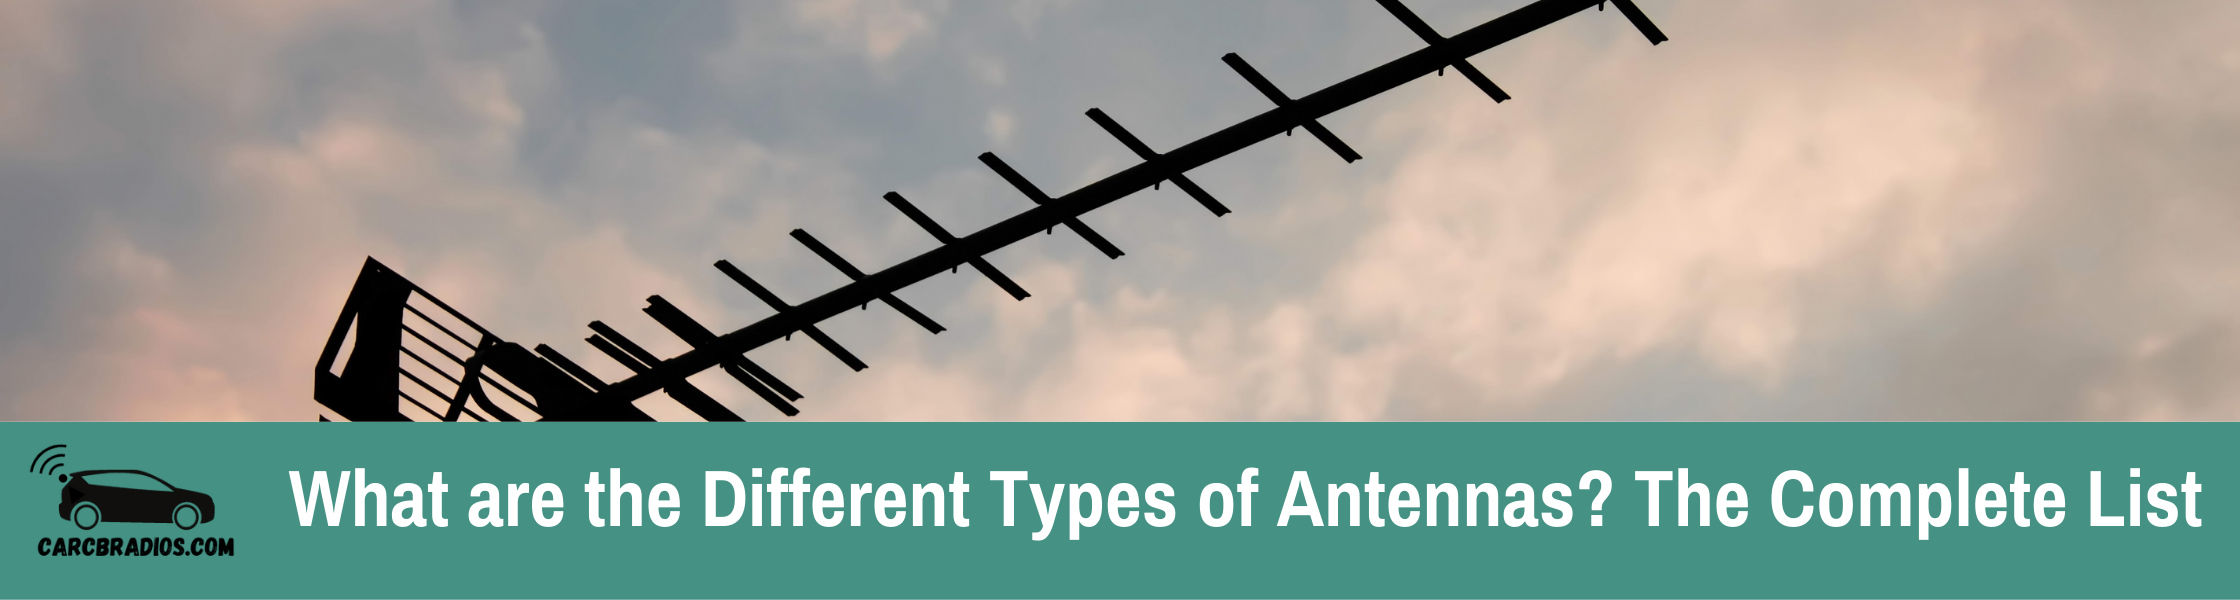 What are the Different Types of Antennas? The Complete List: Generally, there are three large groups of antennas: directions, semi-directional and Omni-directional antenna. Most antennas fall into one of these three groups.